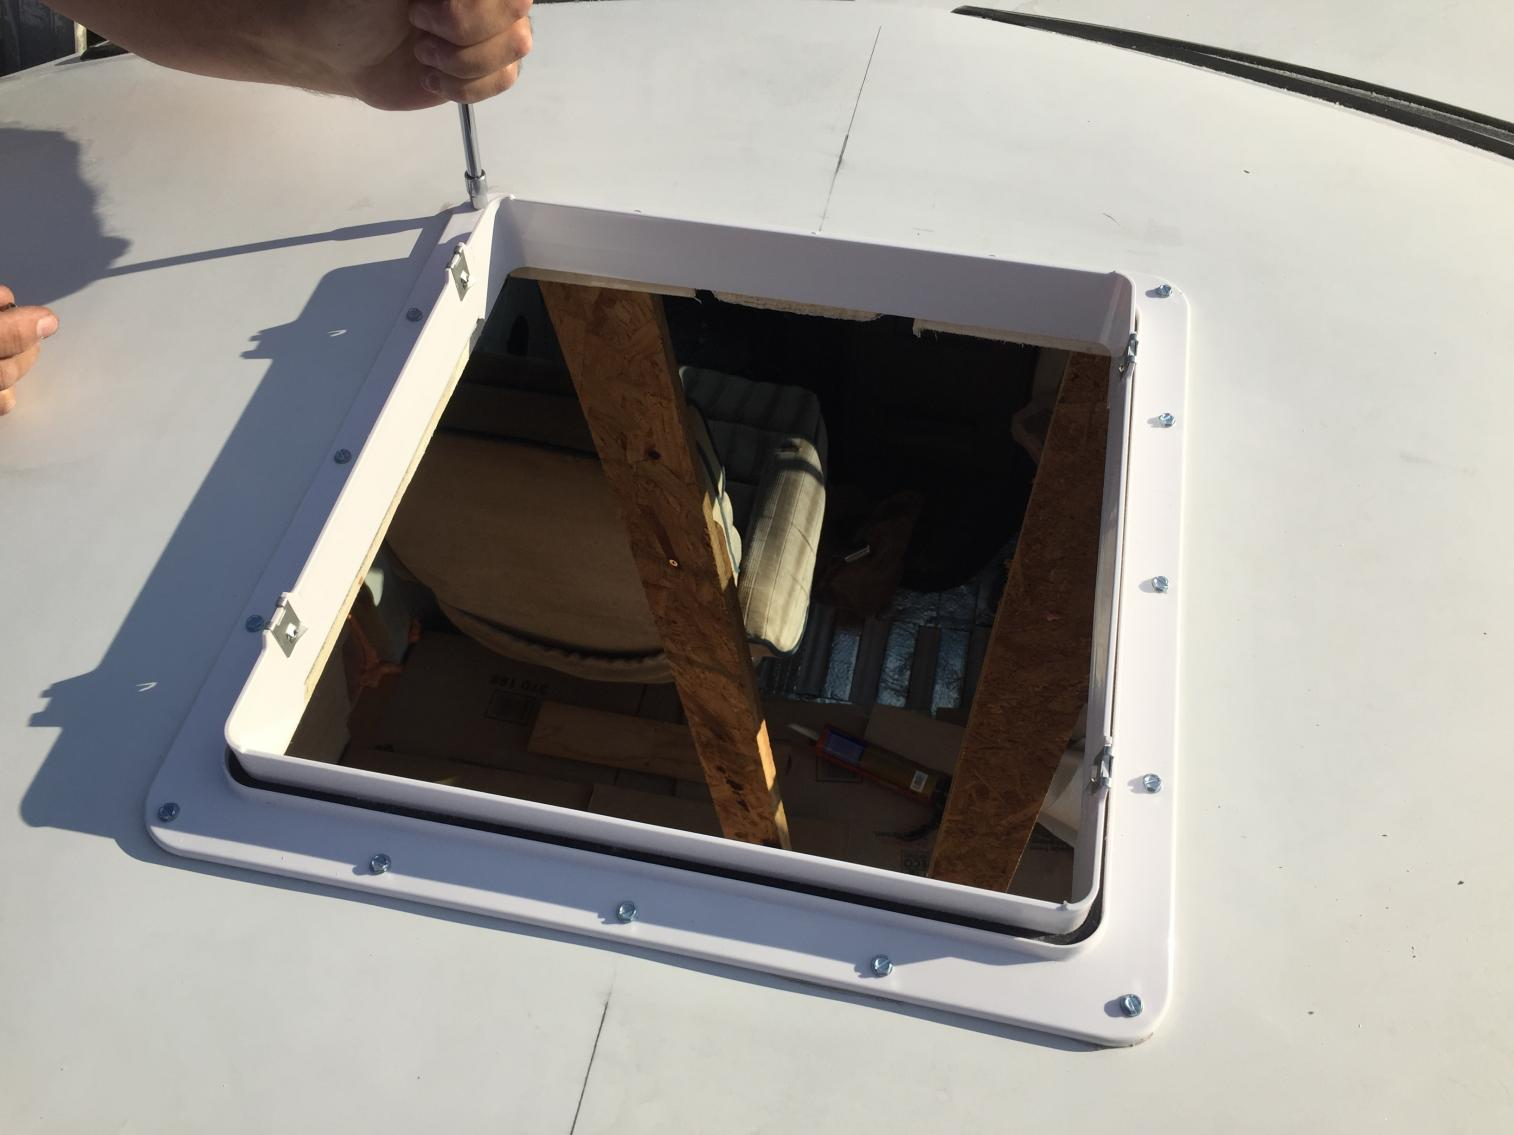 Installing MaxxAir MaxxFan Deluxe. Cut whole in fiberglass hightop roof. Screwed with hex screws with some 1/2 birch plywood for backing. Sealed with Dicor butyl tape and lap sealant.